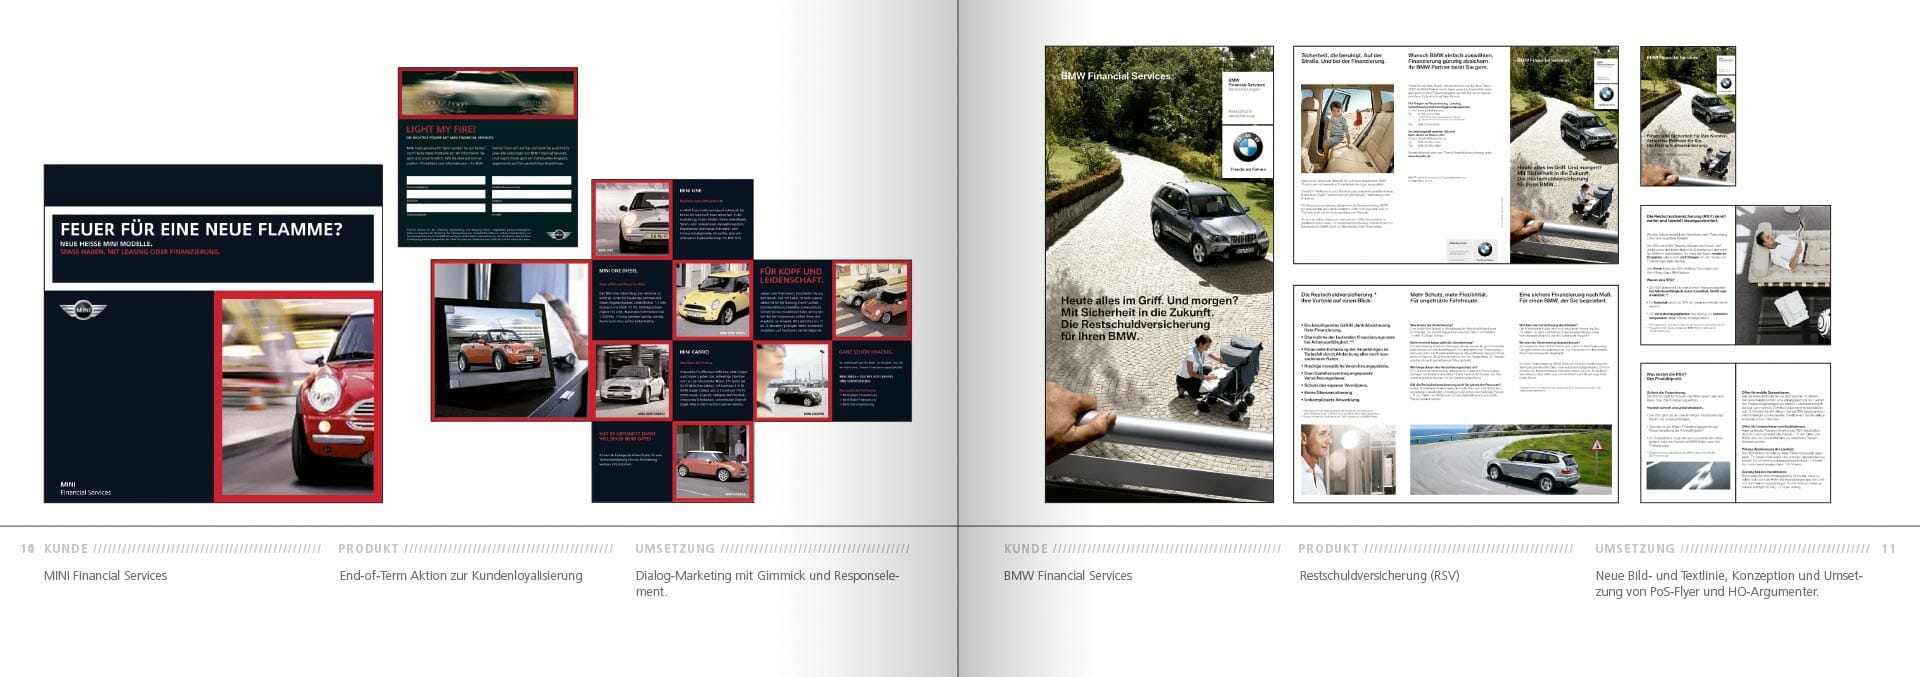 BMW Group Works 2001-2009 Booklet 10-11